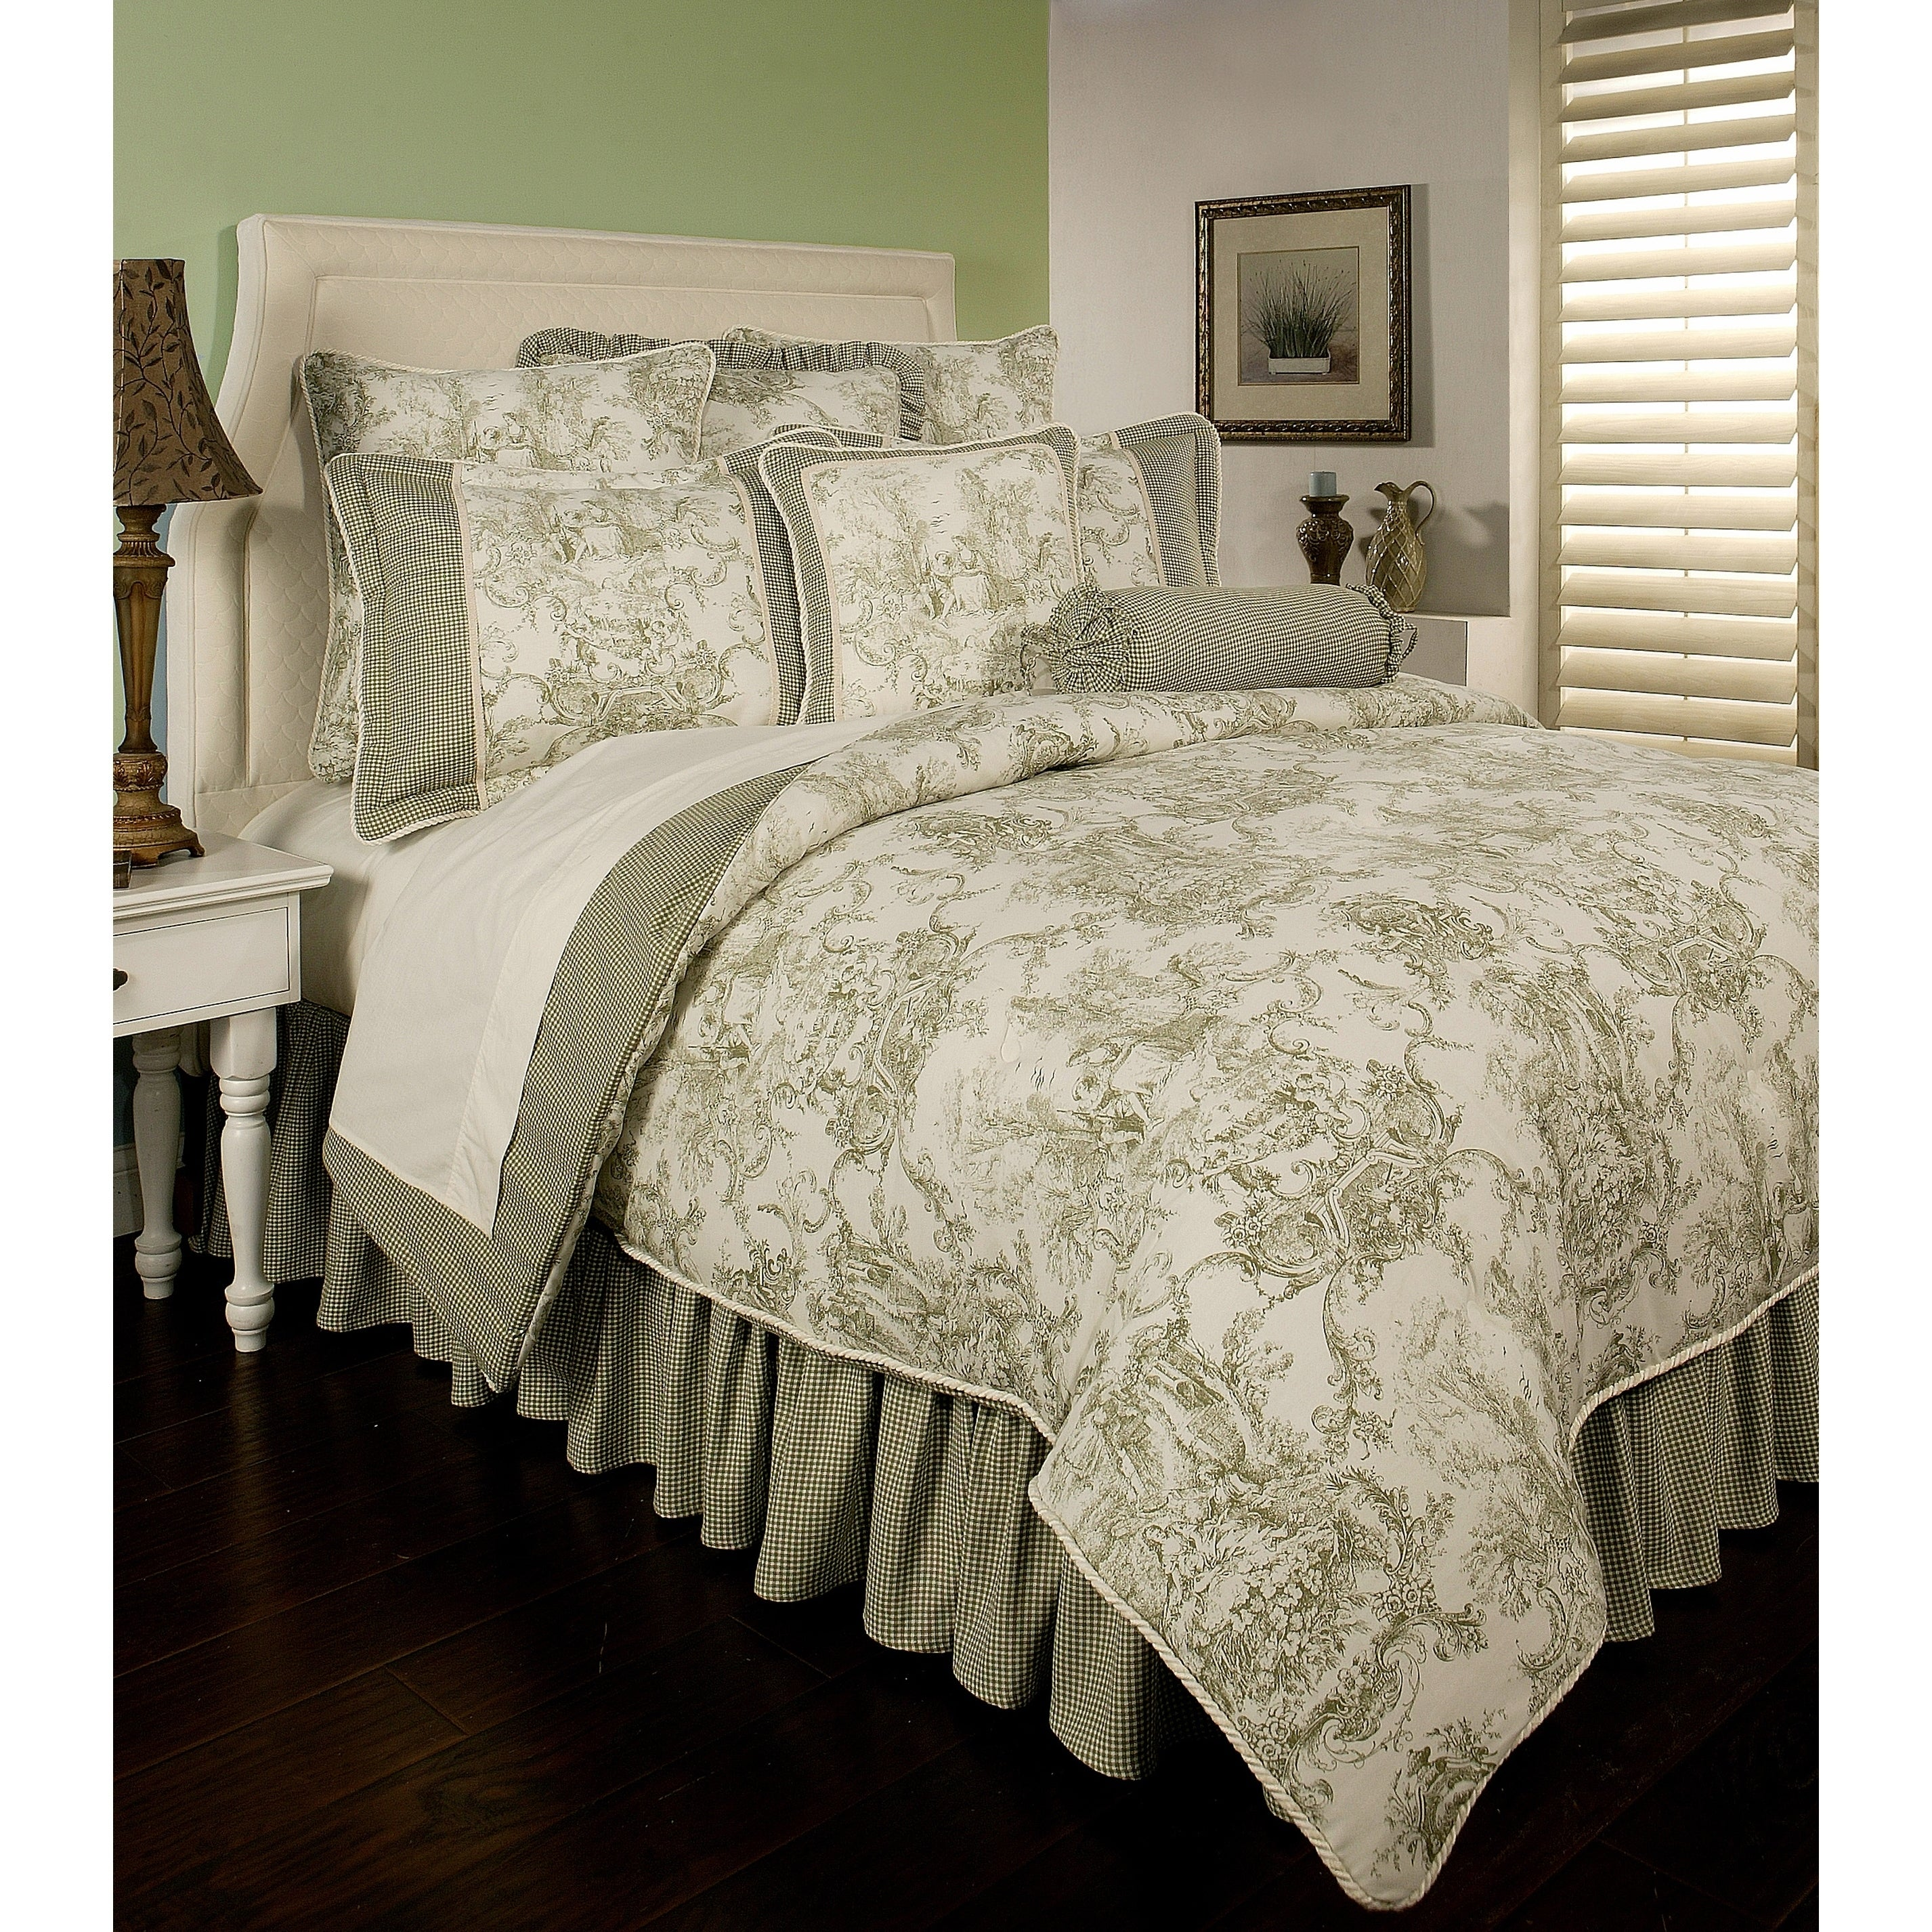 Pchf Country Toile Sage 6 Piece Comforter Set Overstock 18536922 Queen